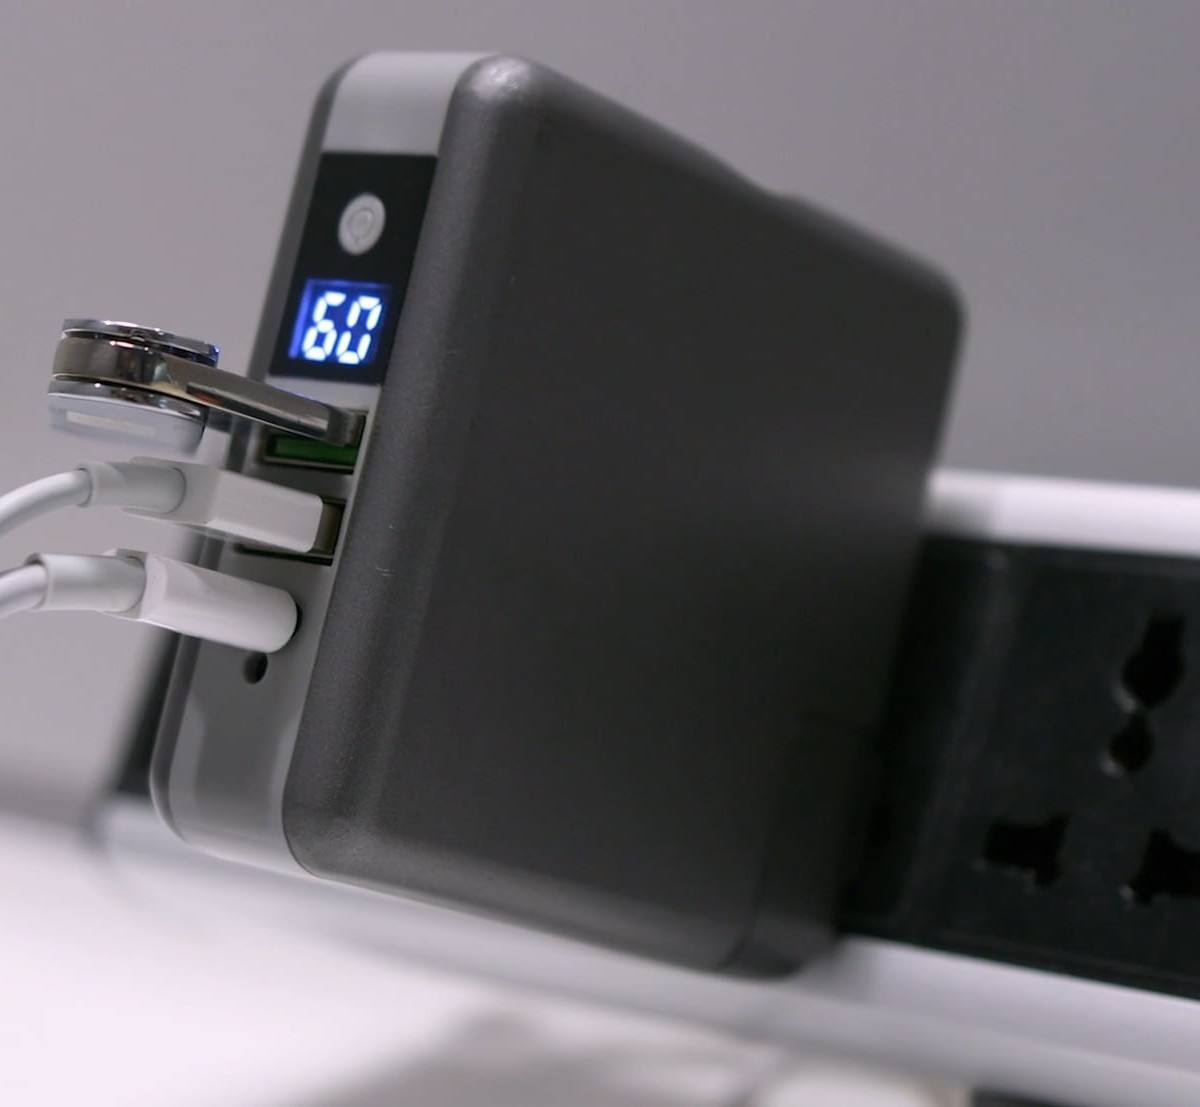 GOSPACE SuperCharger 2.0 File-Transferring Power Bank provides multiple functions in one device